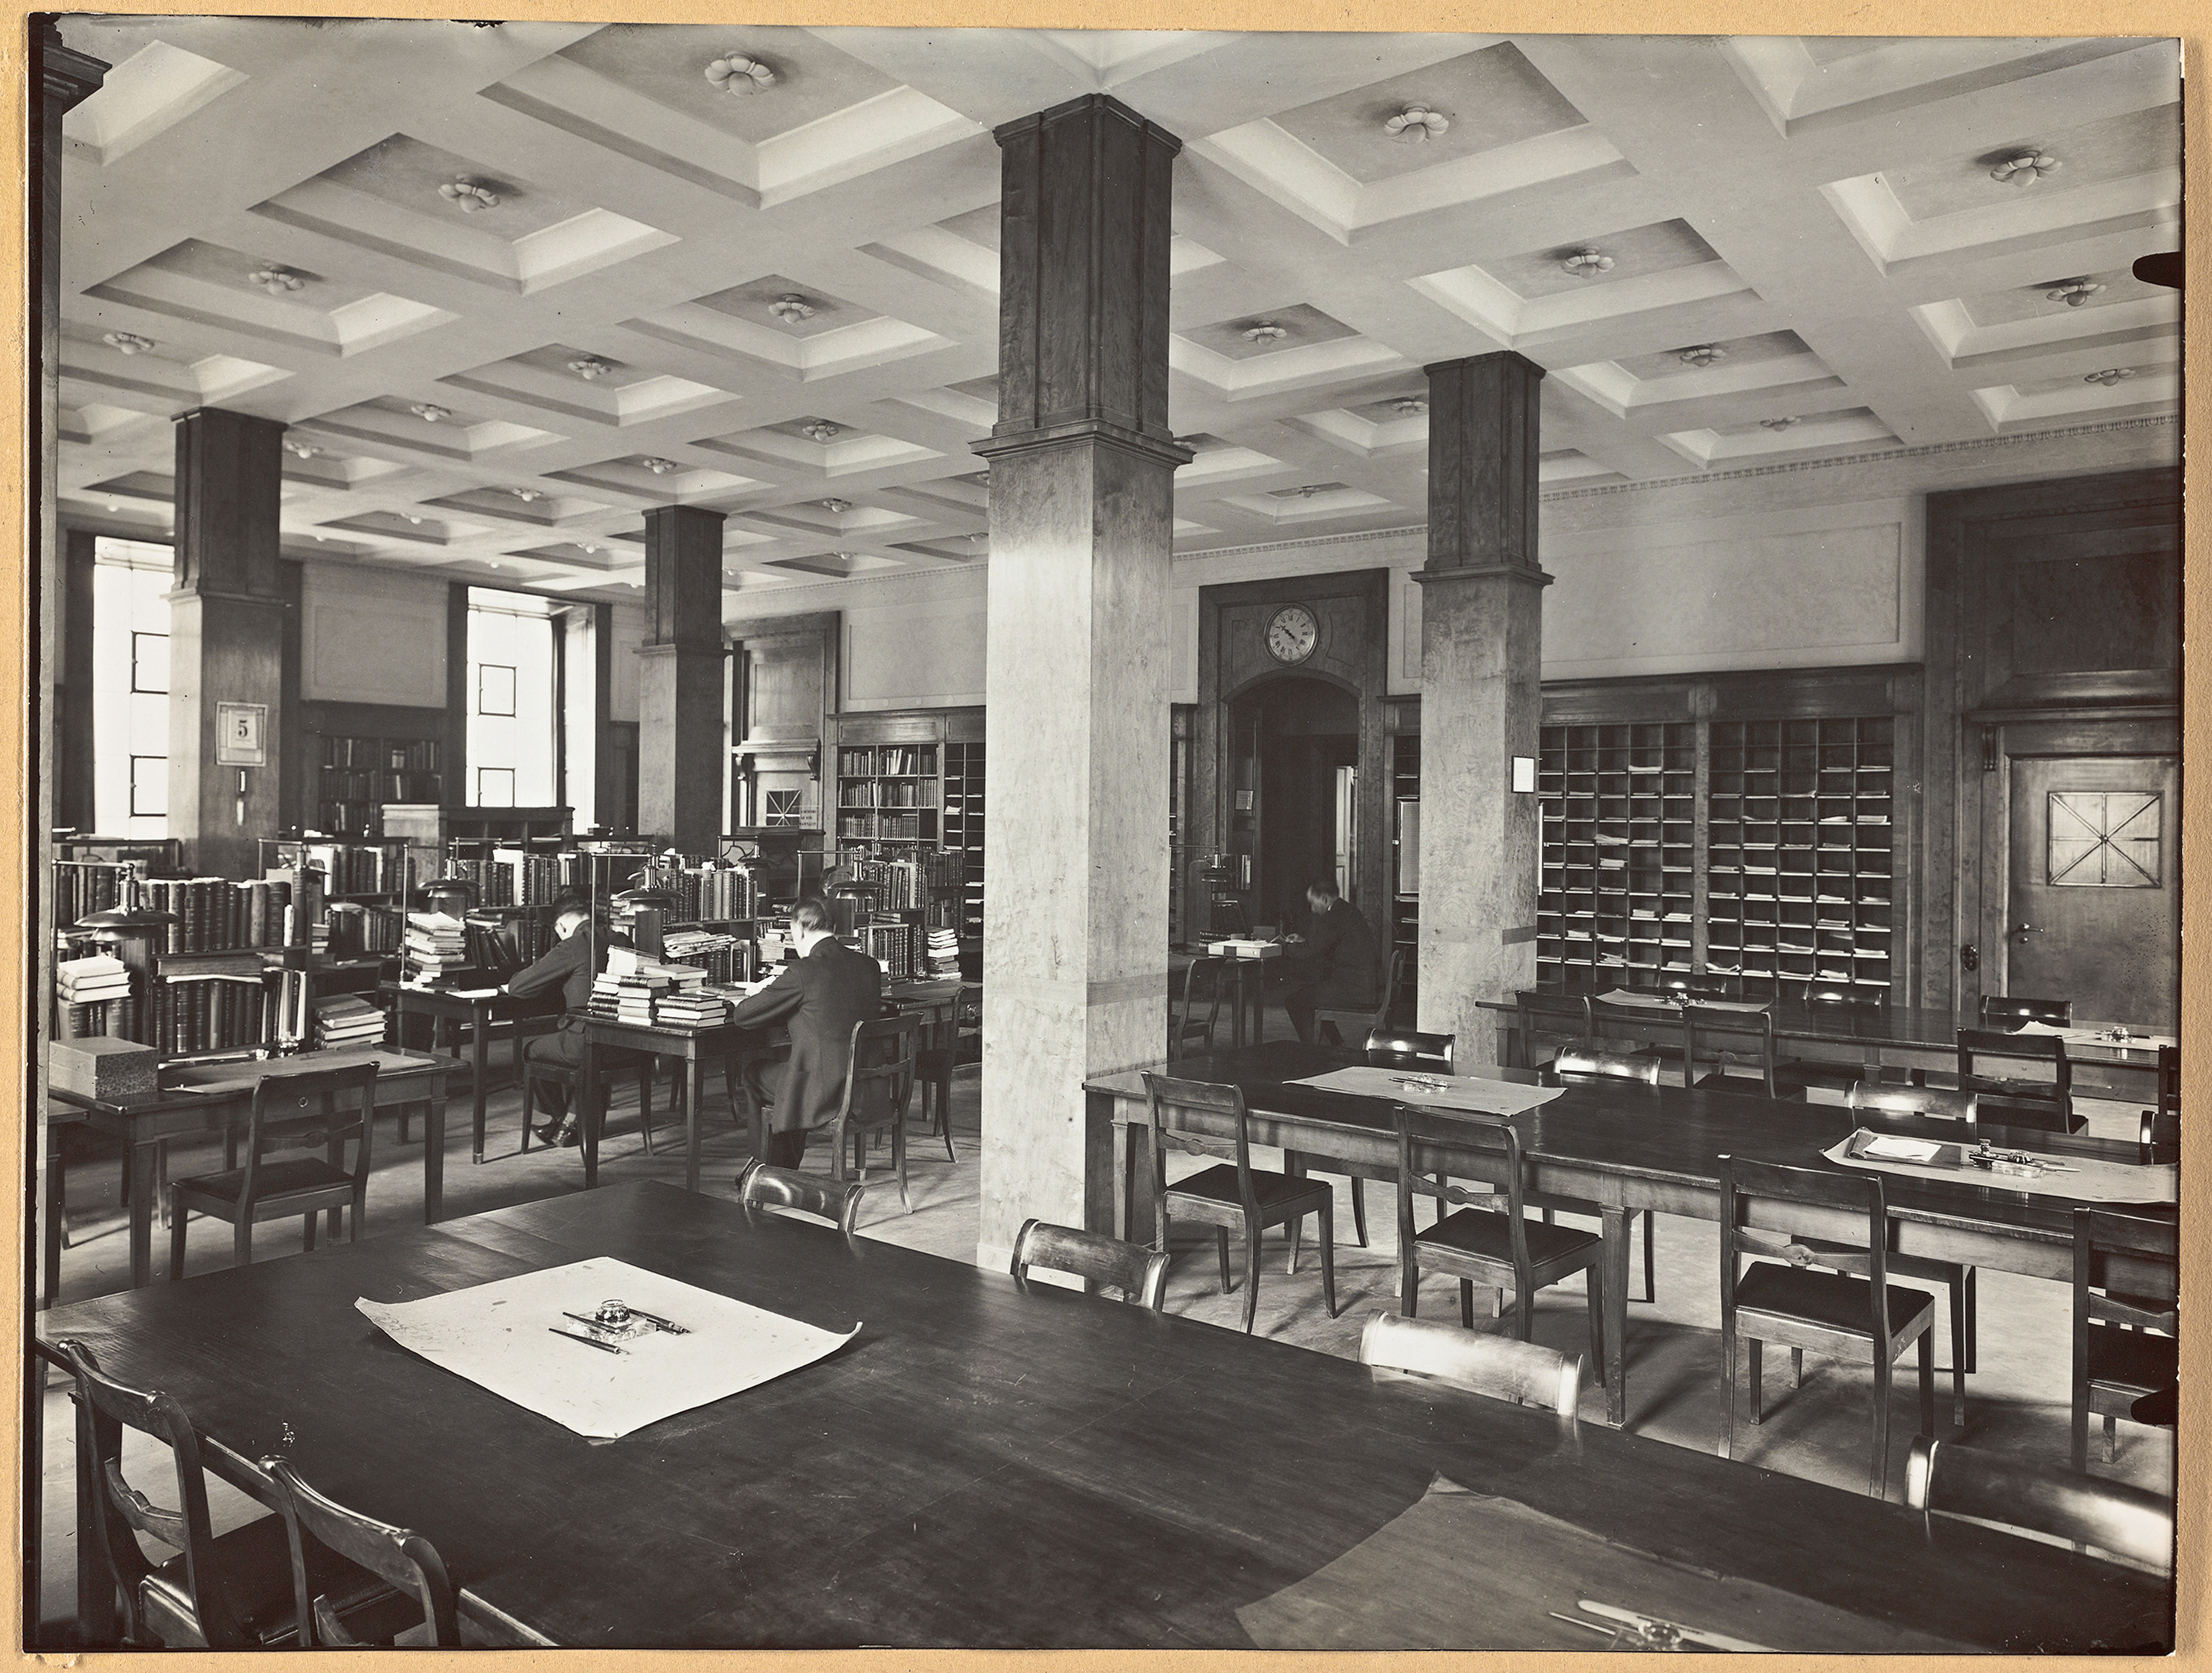 Large hall with four pillars, bookshelves, two large tables with several chairs around and individual reading areas.